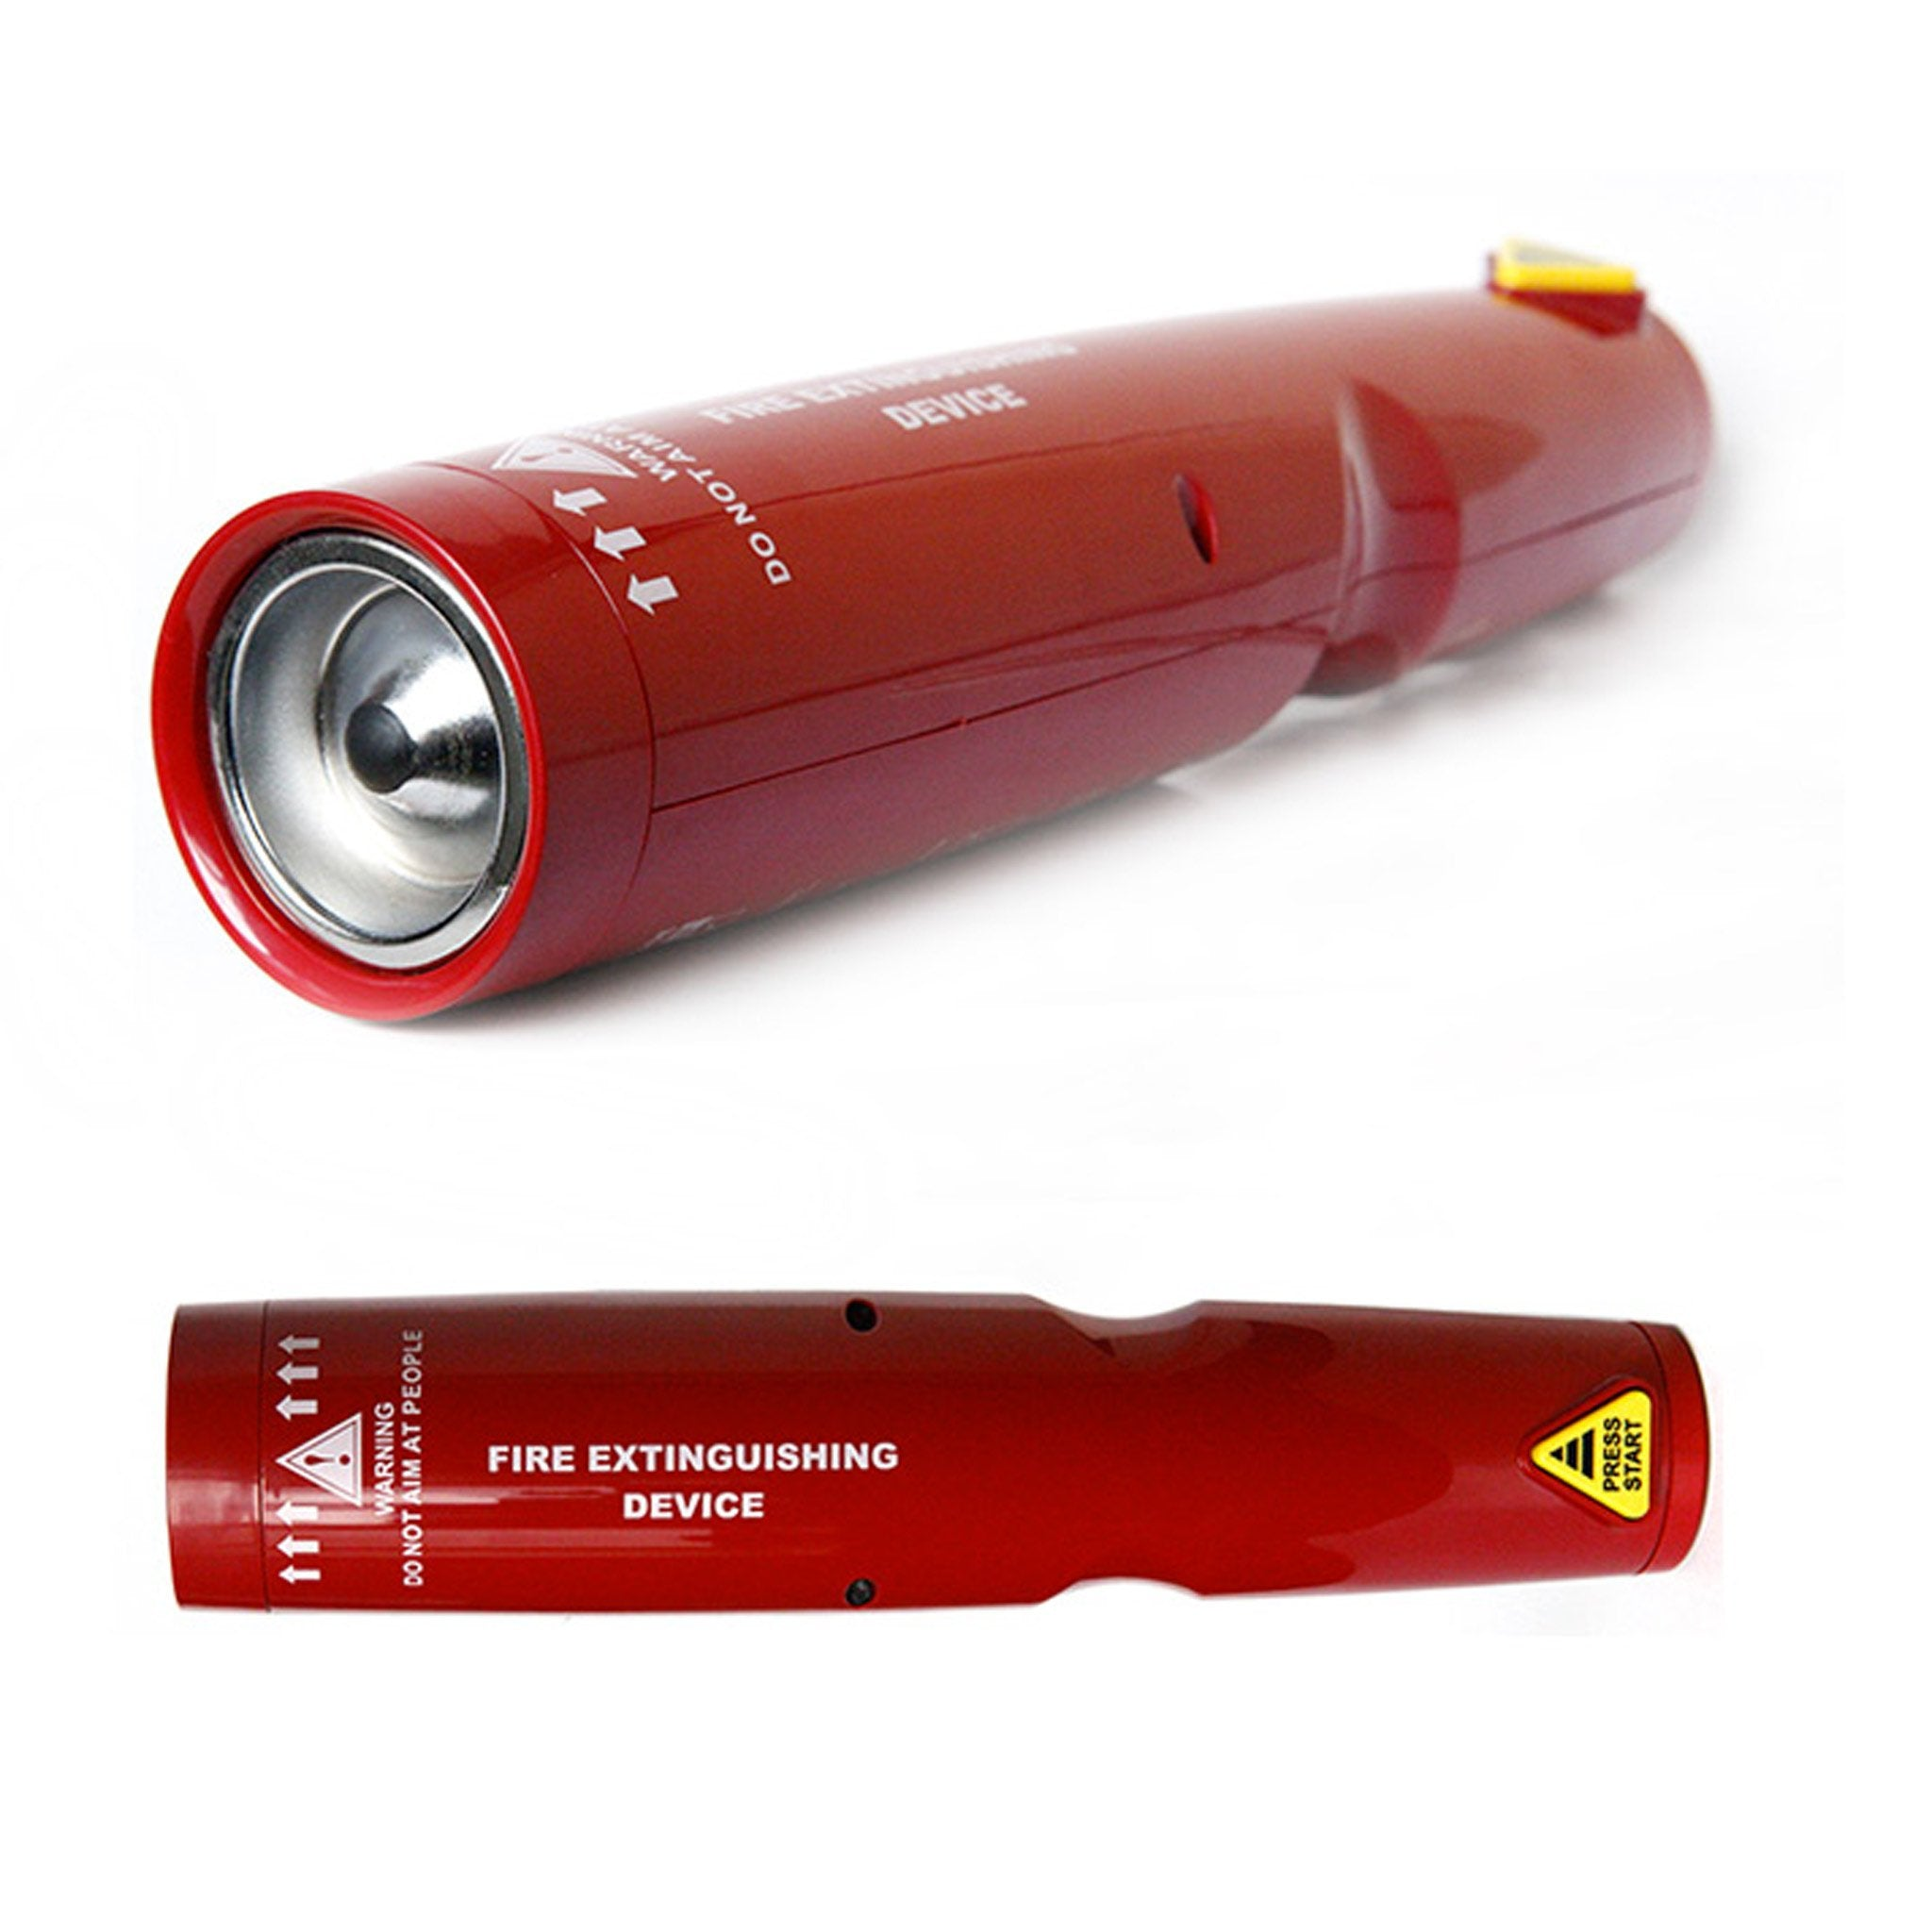 Firetool Portable Fire Extinguishers - Arthur Beale